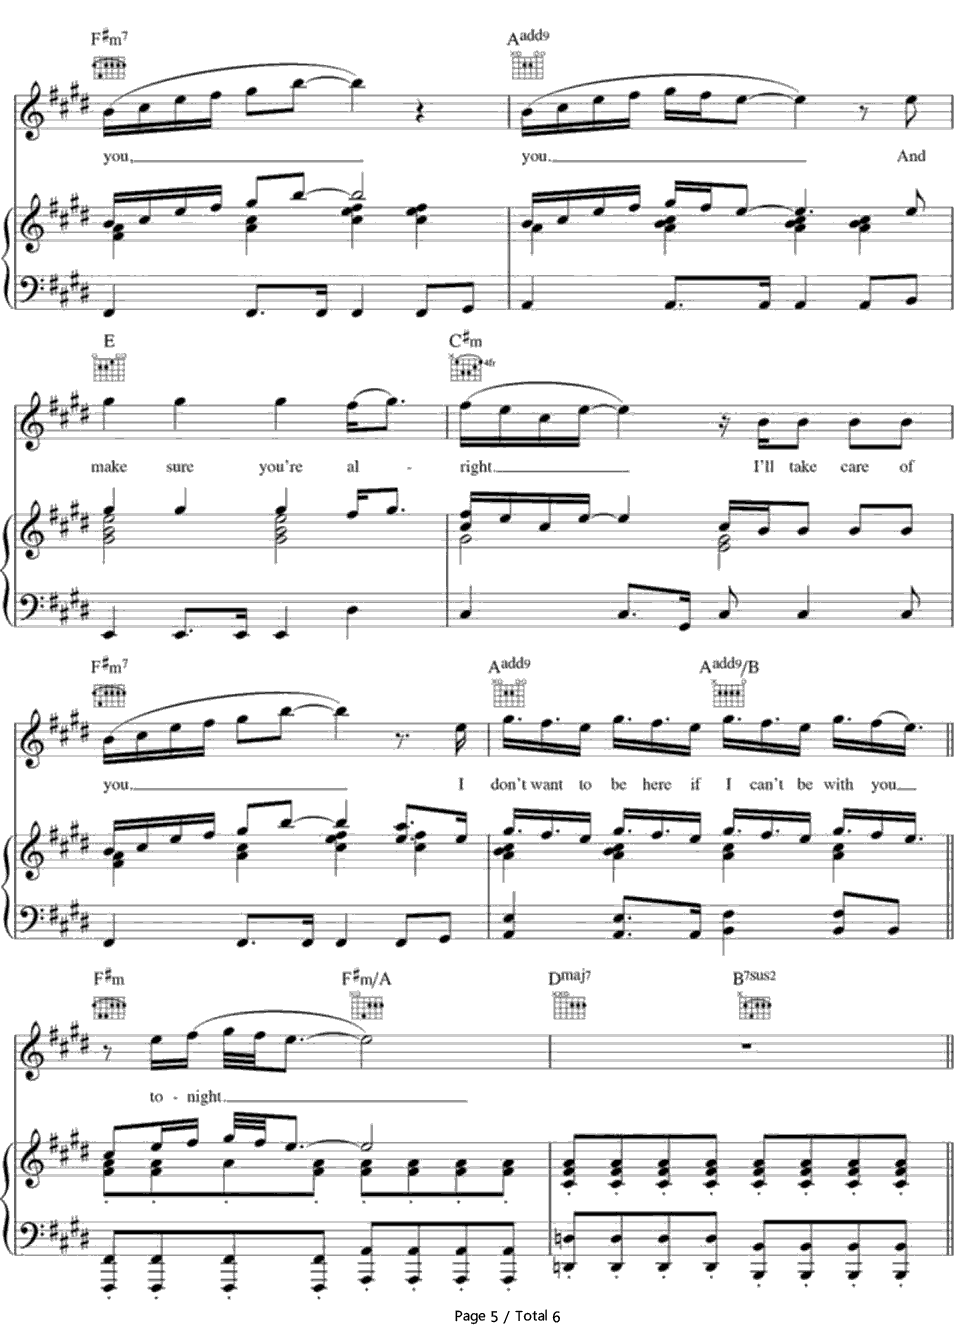 Lay Me Down-Sam Smith Stave Preview 5-Free Piano Sheet Music u0026 Piano Chords